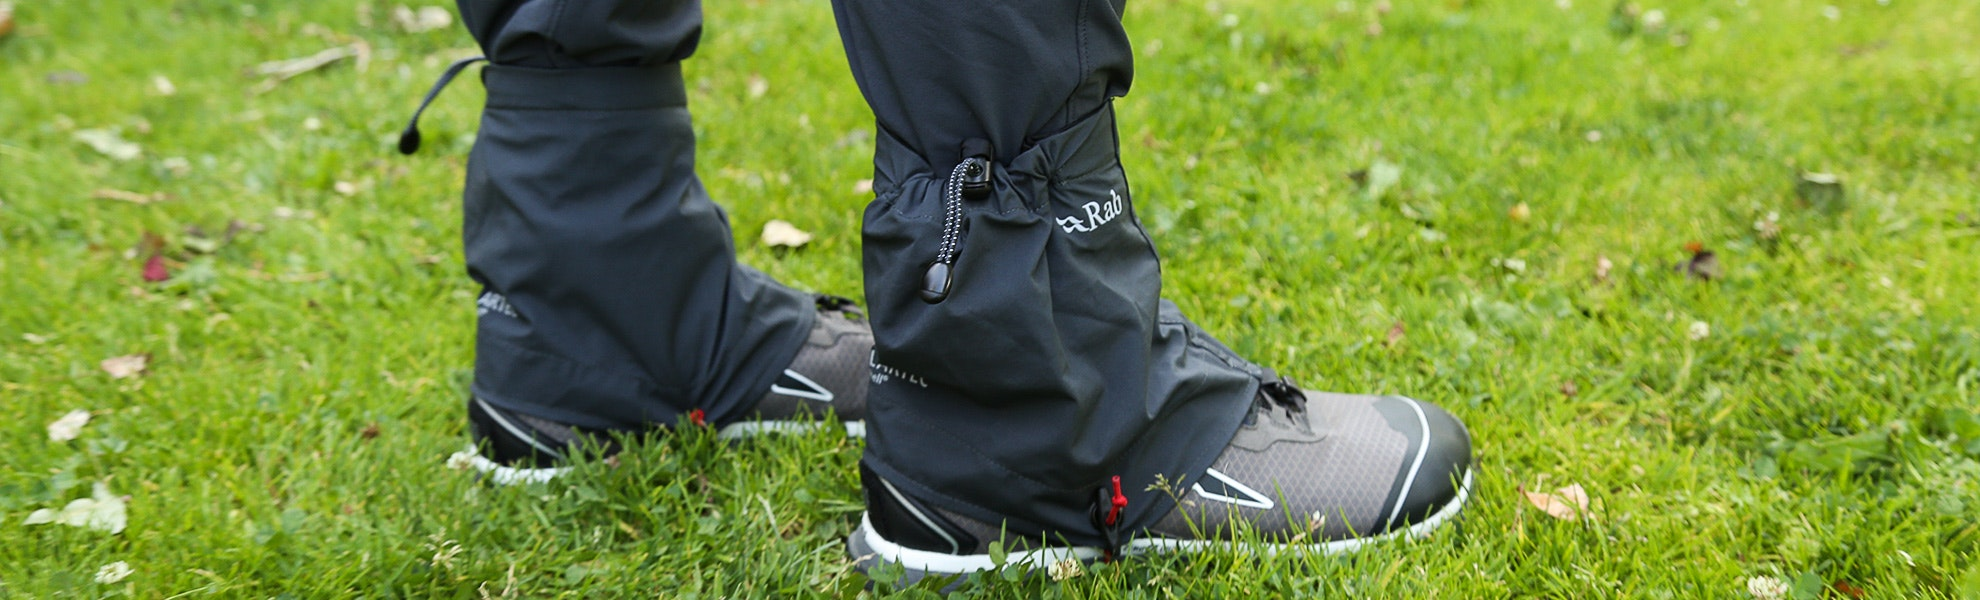 Rab Mens Neo Shortie Gaiters